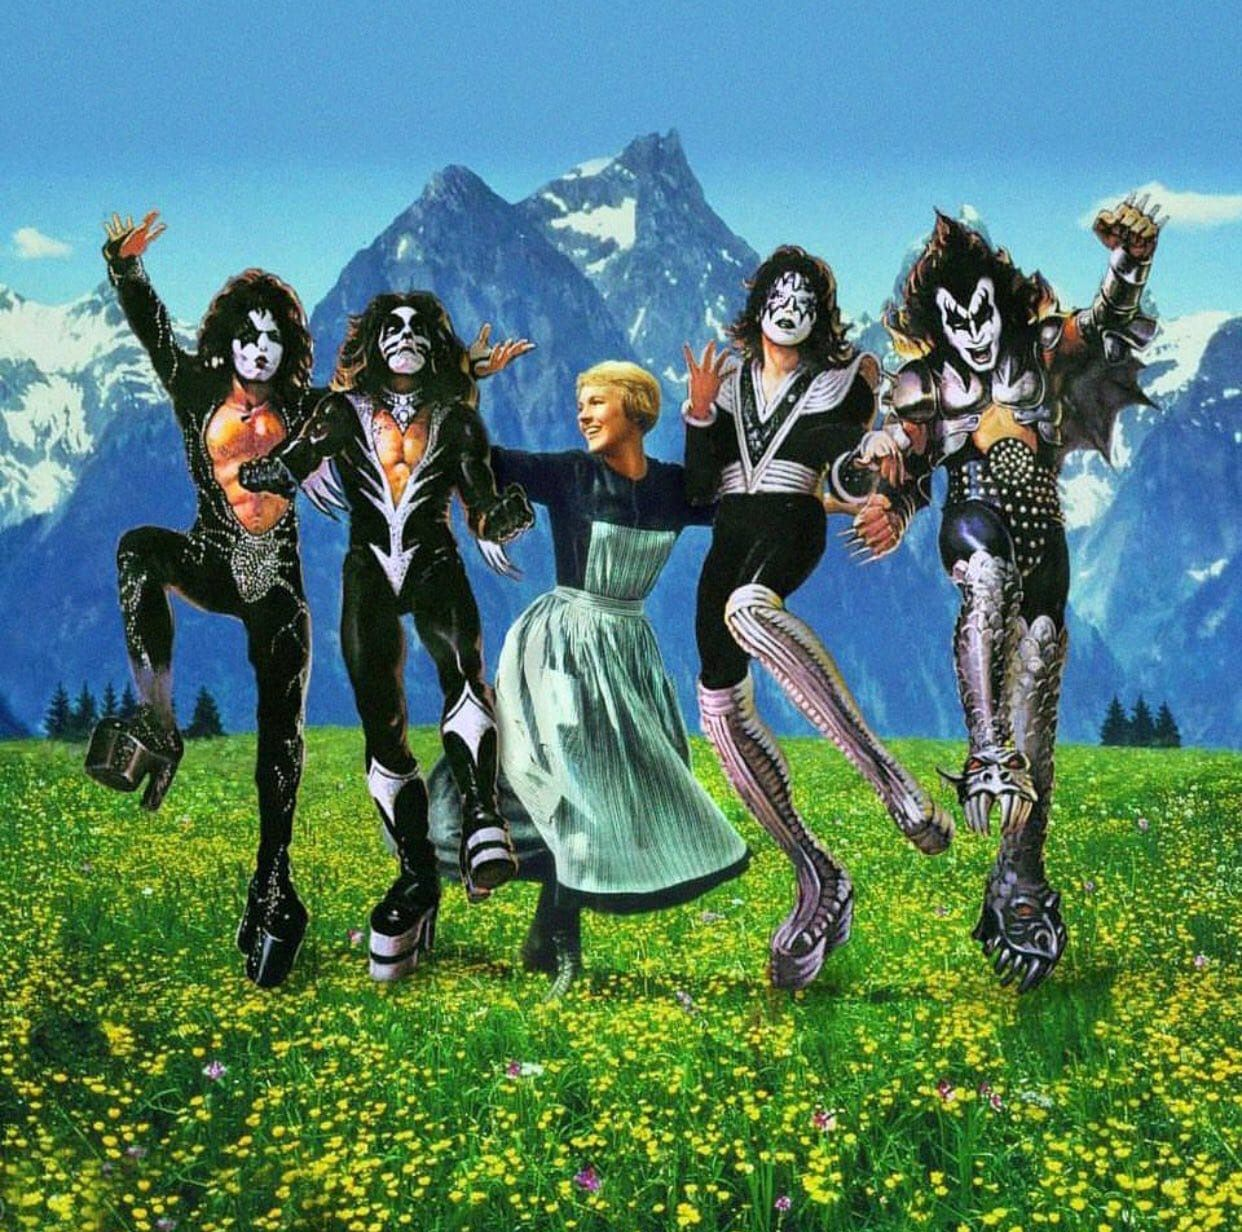 Pin By Chris Deane On Kiss Kiss Music Kiss Concert Kiss Art